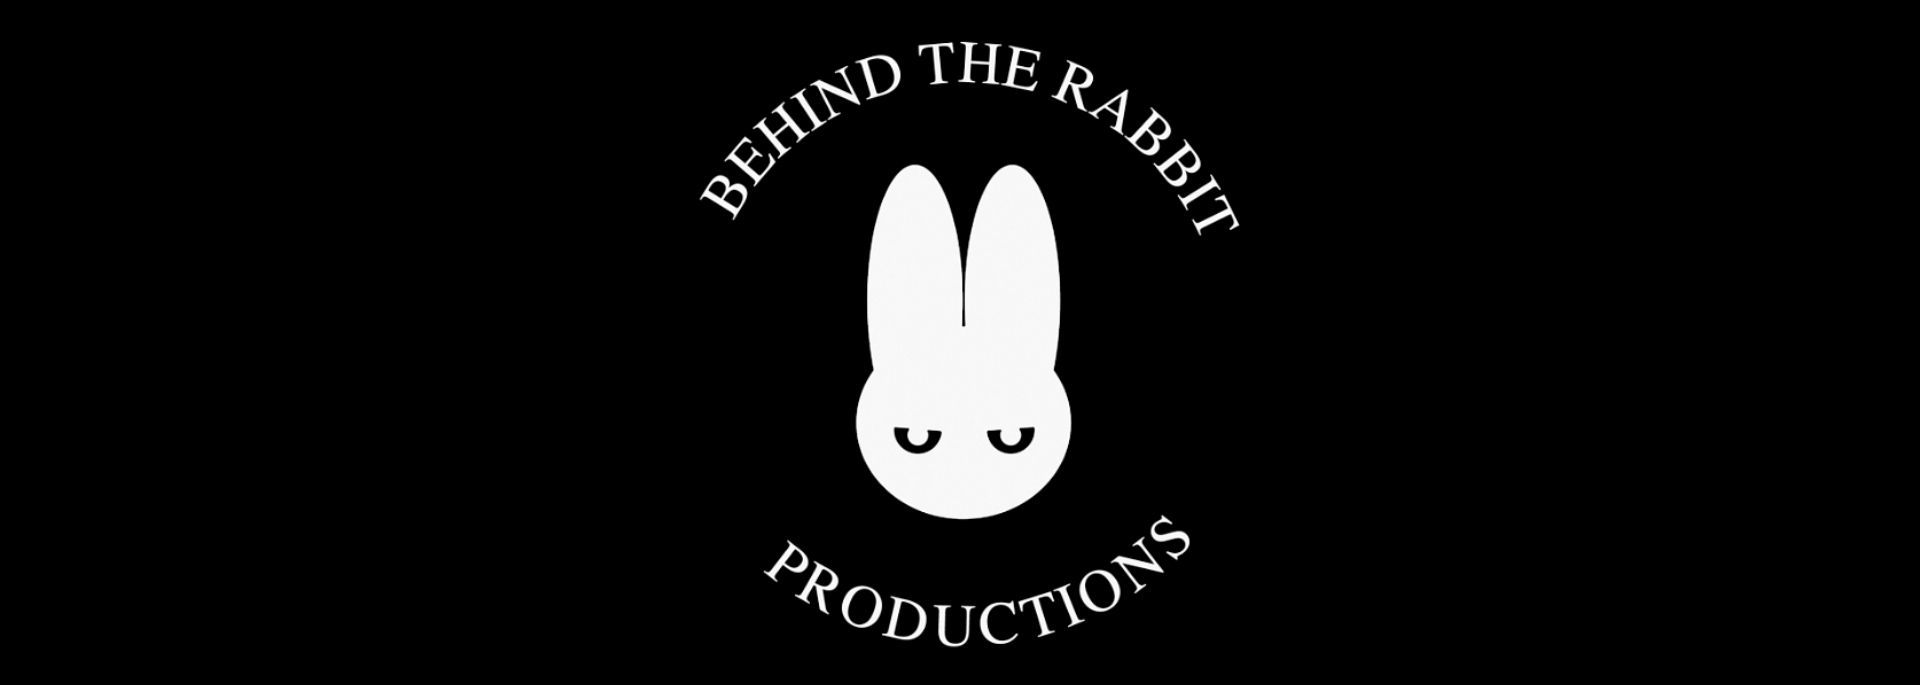 Behind the Rabbit channel